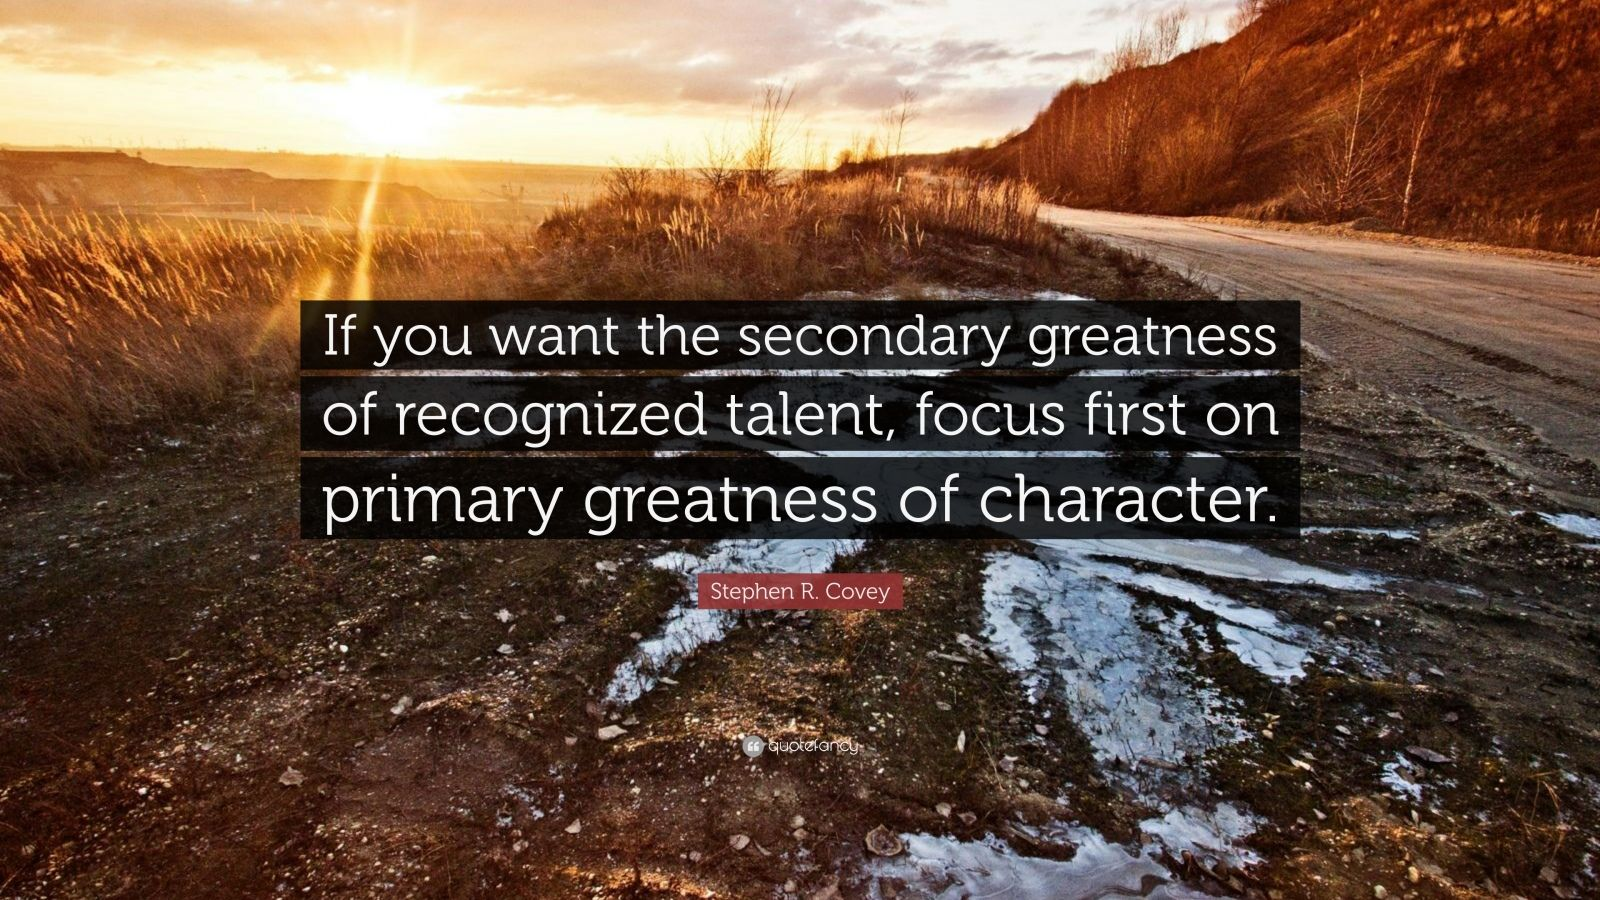 """Stephen R. Covey Quote: """"If you want the secondary greatness of recognized talent, focus first on primary greatness of character."""""""